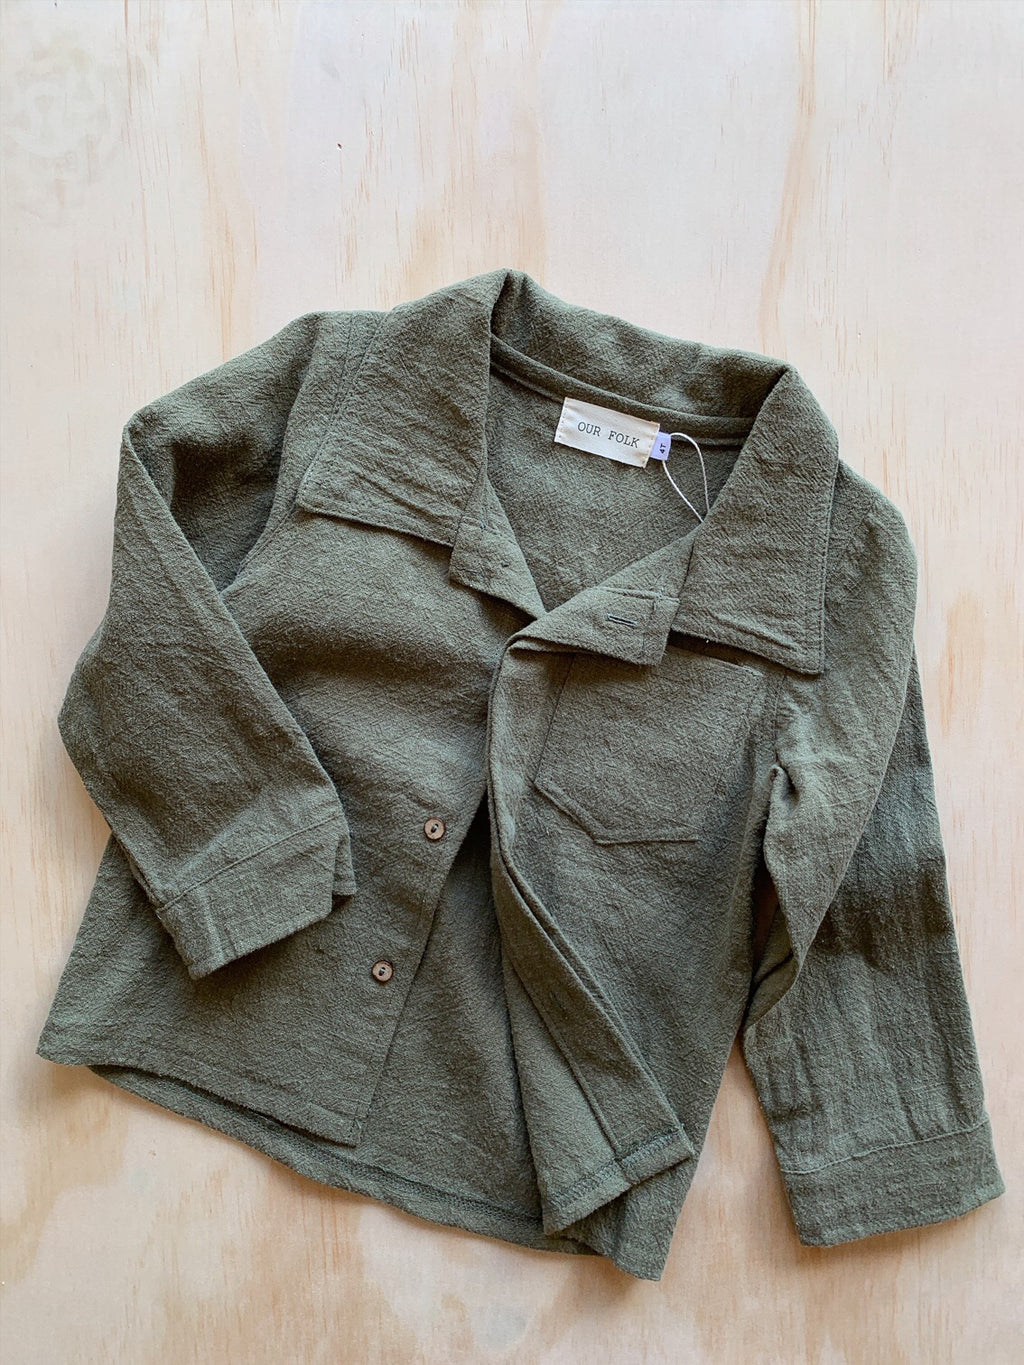 Linen Jacket Olive- Our Folk